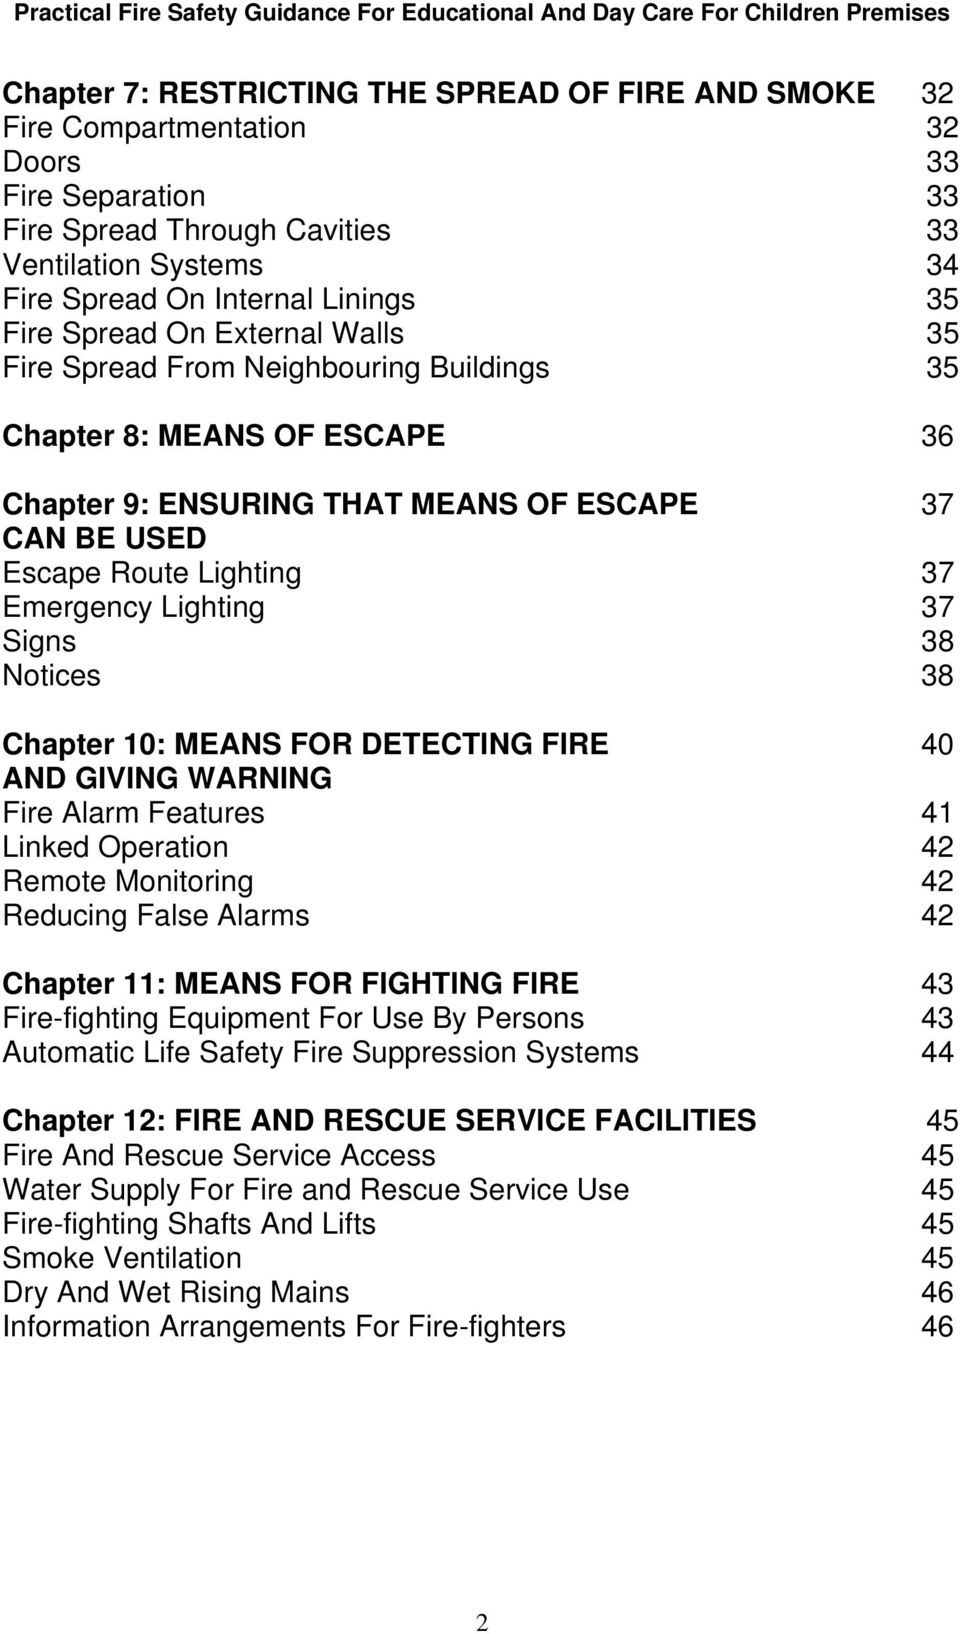 Lighting 37 Signs 38 Notices 38 Chapter 10: MEANS FOR DETECTING FIRE 40 AND GIVING WARNING Fire Alarm Features 41 Linked Operation 42 Remote Monitoring 42 Reducing False Alarms 42 Chapter 11: MEANS